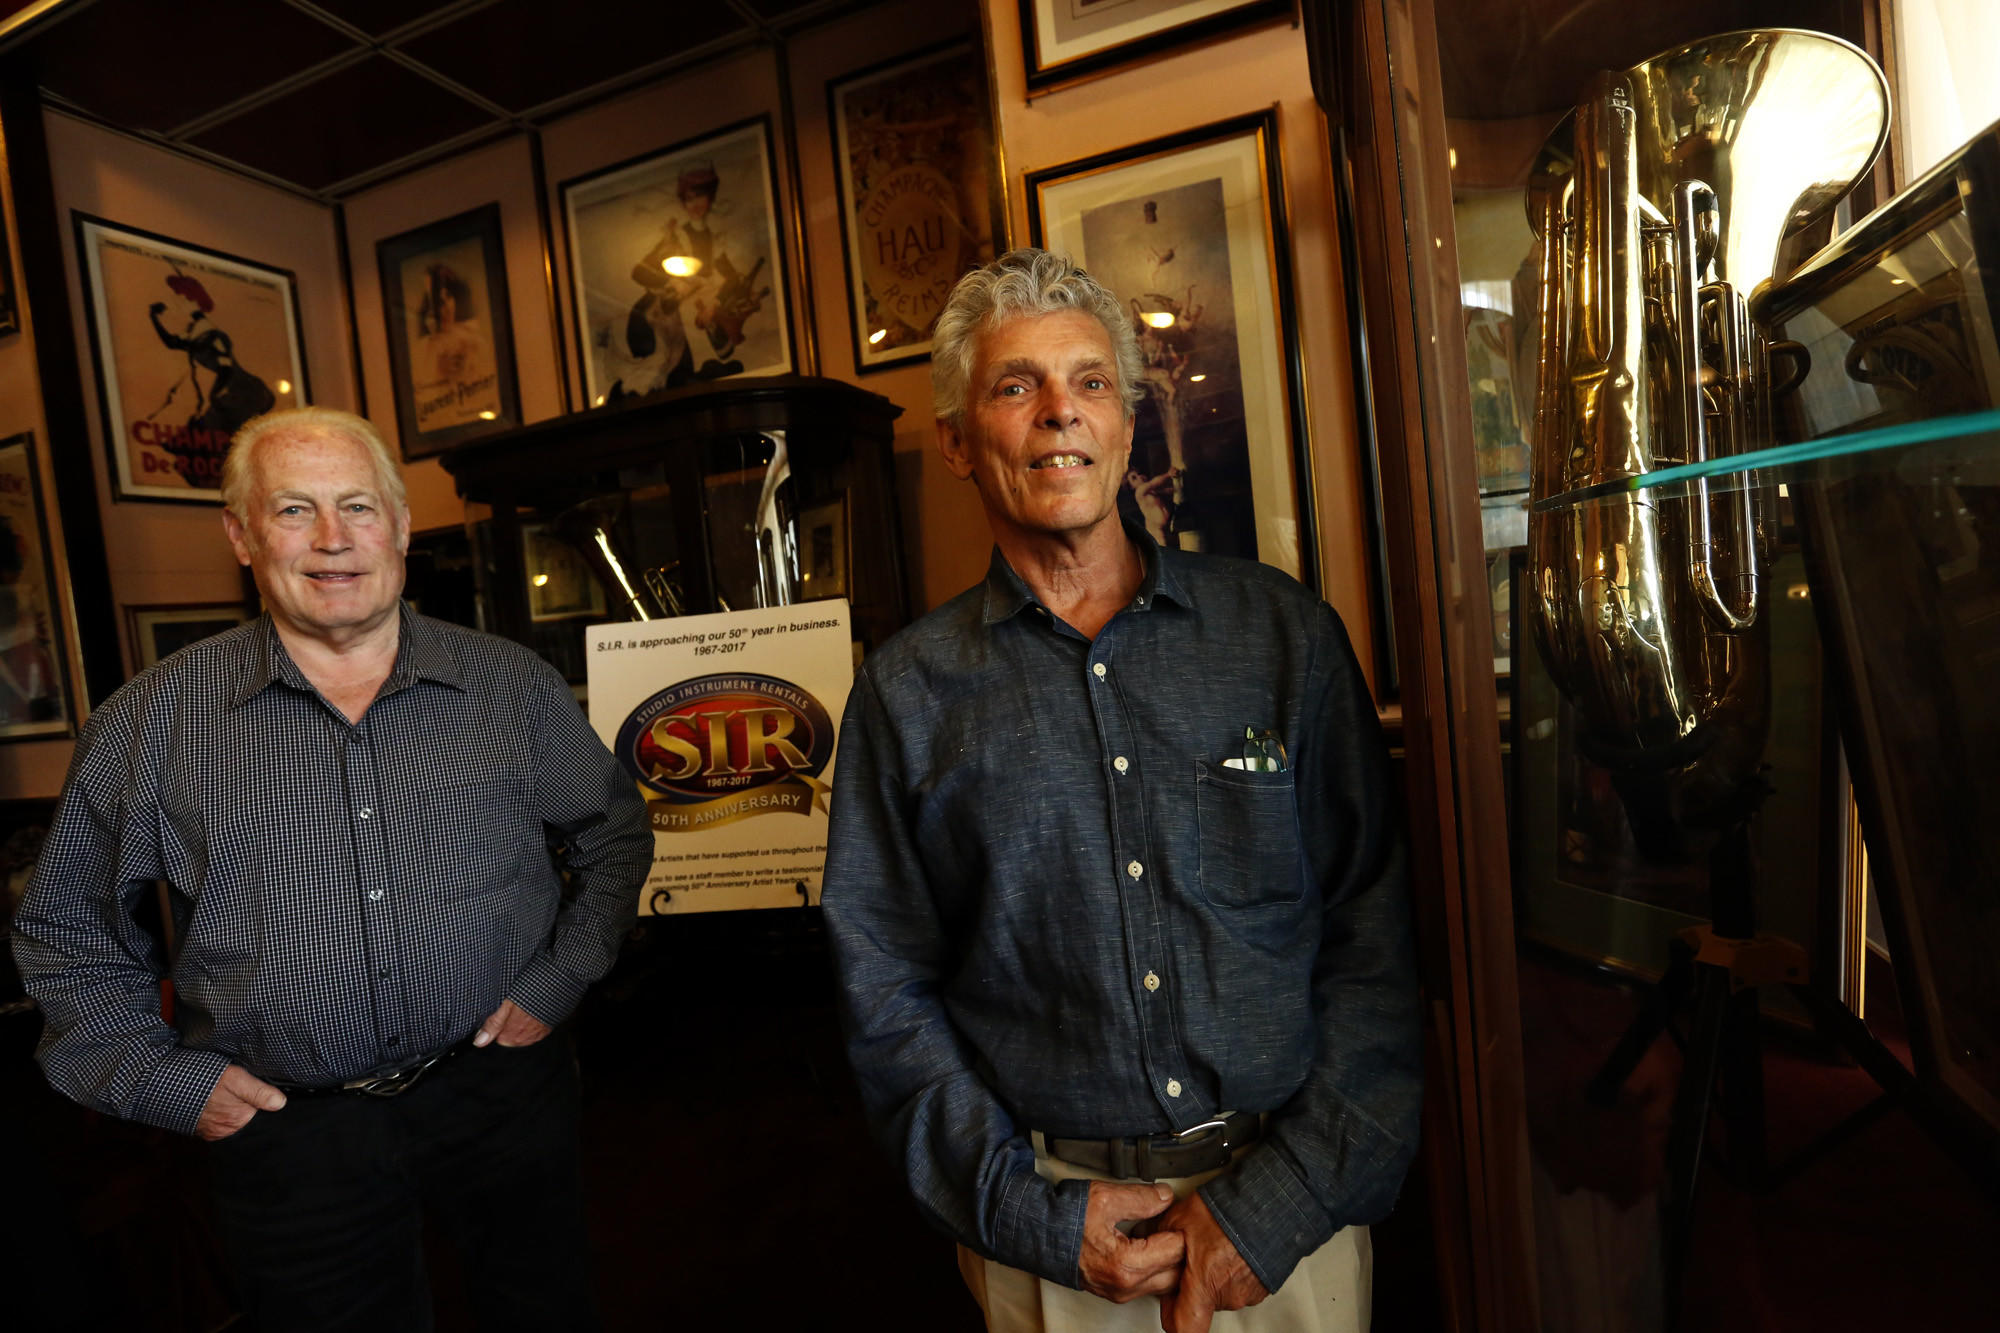 Ken Berry, left, and Dolph Rempp, co-founders of Studio Instrument Rentals. (Genaro Molina / Los Angeles Times)